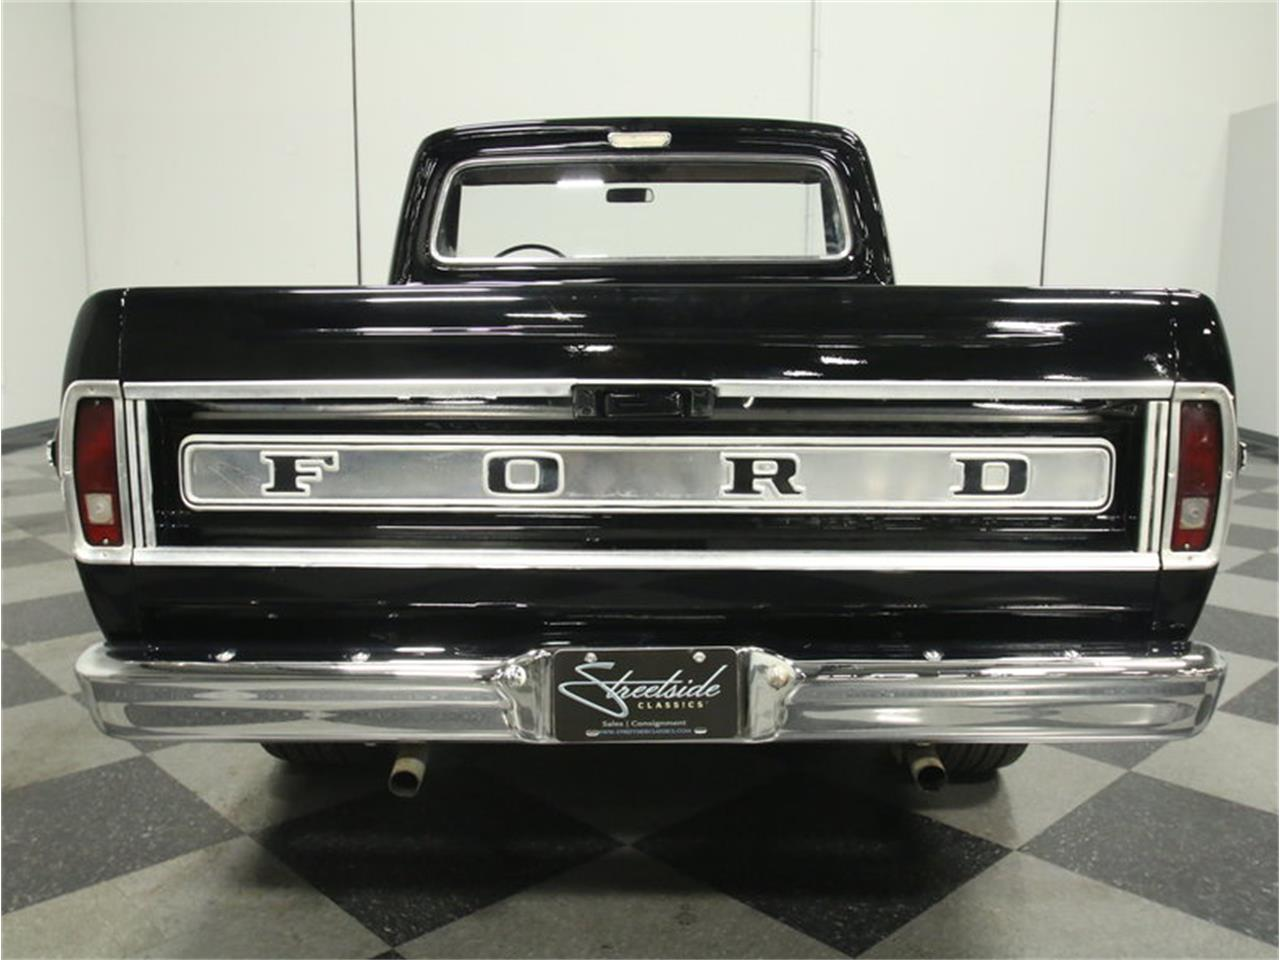 1969 Ford F100 For Sale Cc 967113 N Series Truck Large Picture Of 69 Kq89